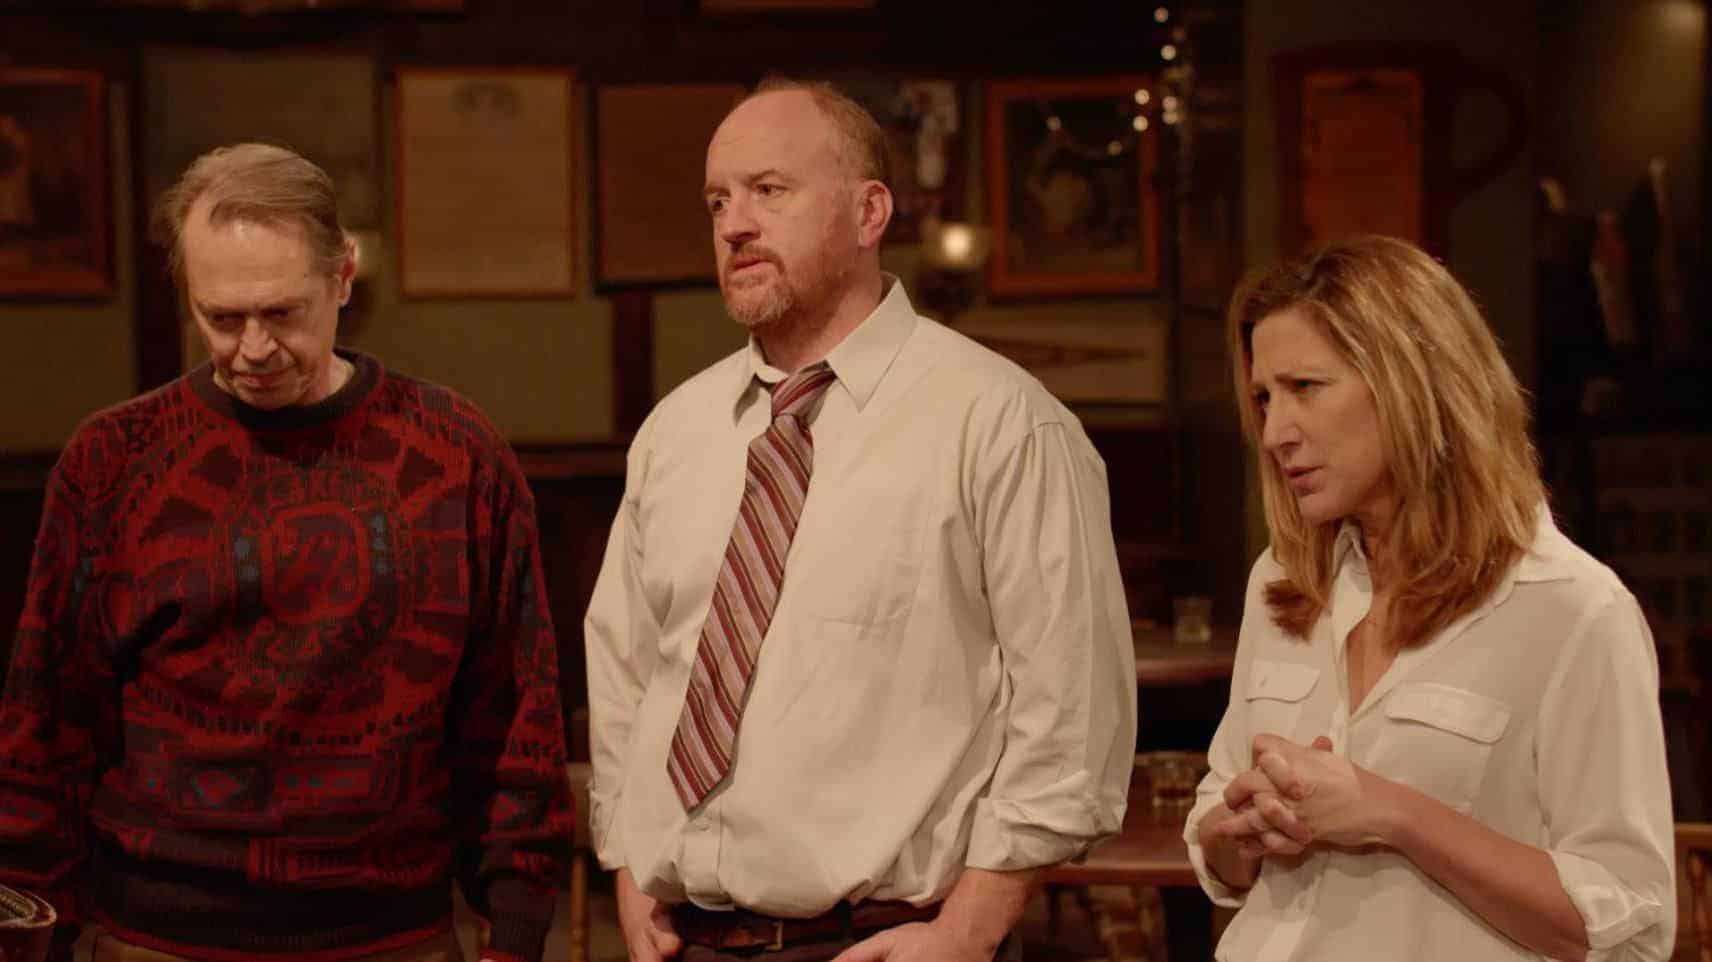 horace & pete, Louis CK